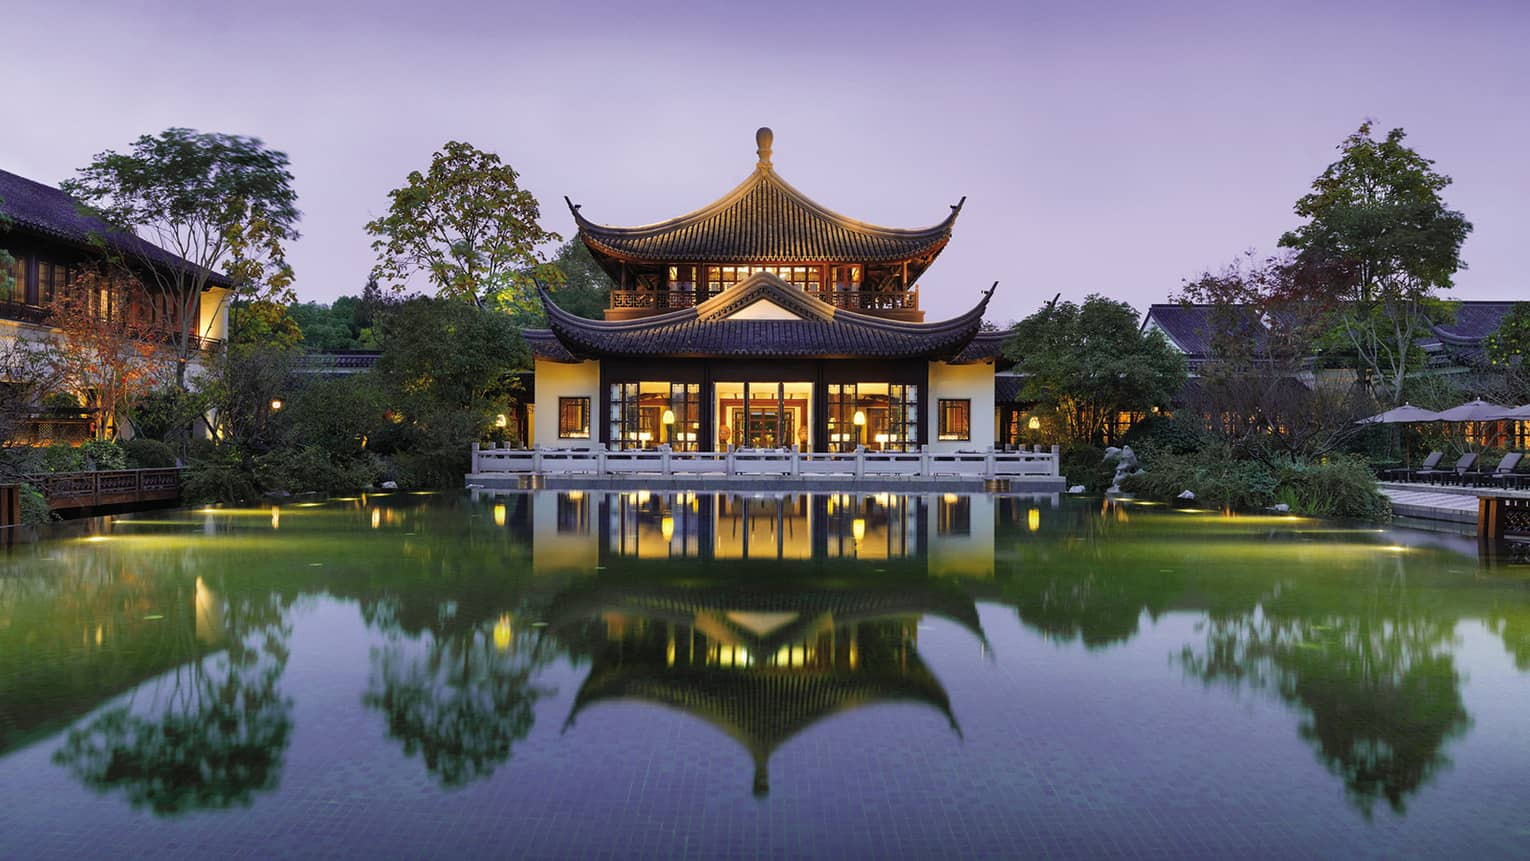 Four Seasons Hotel Hangzhou exterior, reflection in large pool at dusk